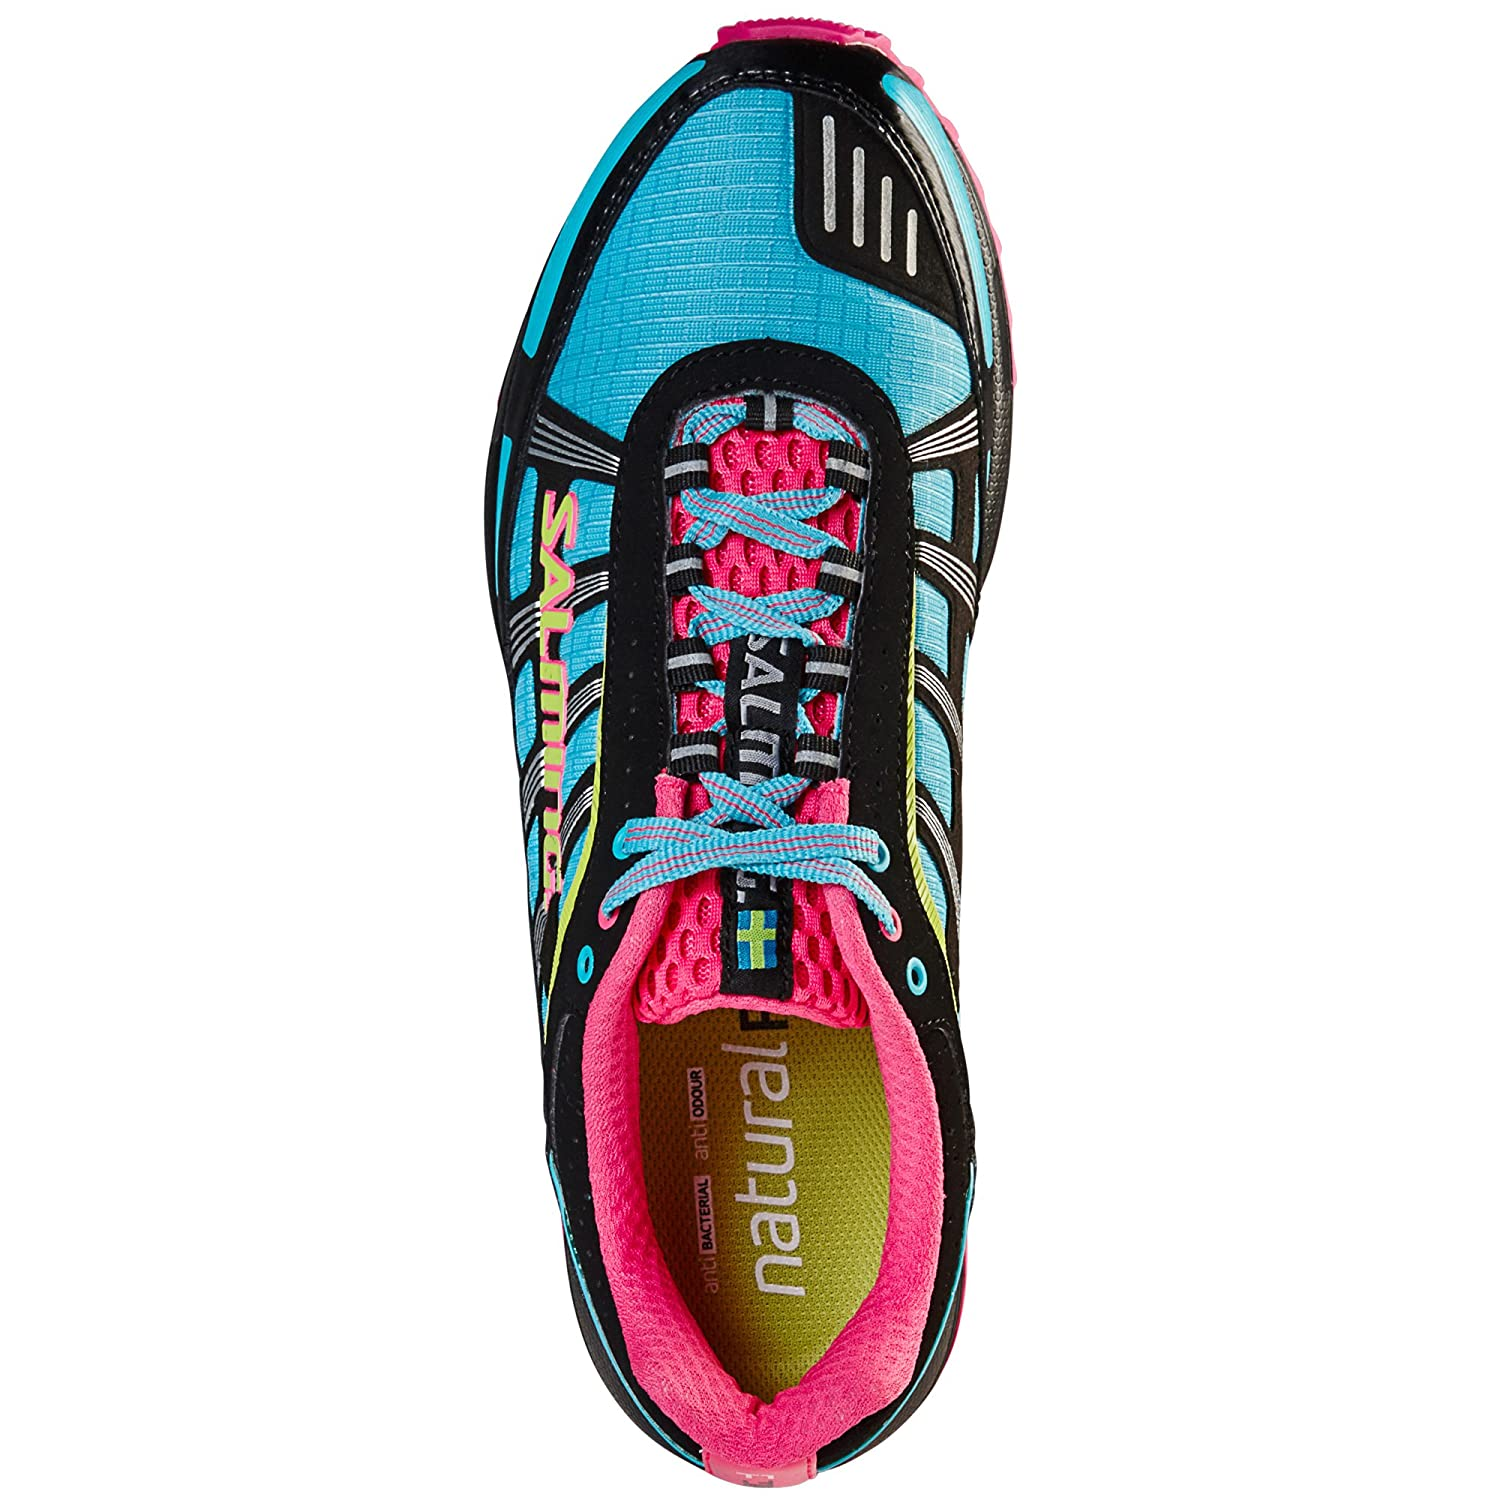 Salming Trail T2 8.5 Women's Running Shoes - SS16 B01HUVEIX6 8.5 T2 B(M) US|Black 44588c